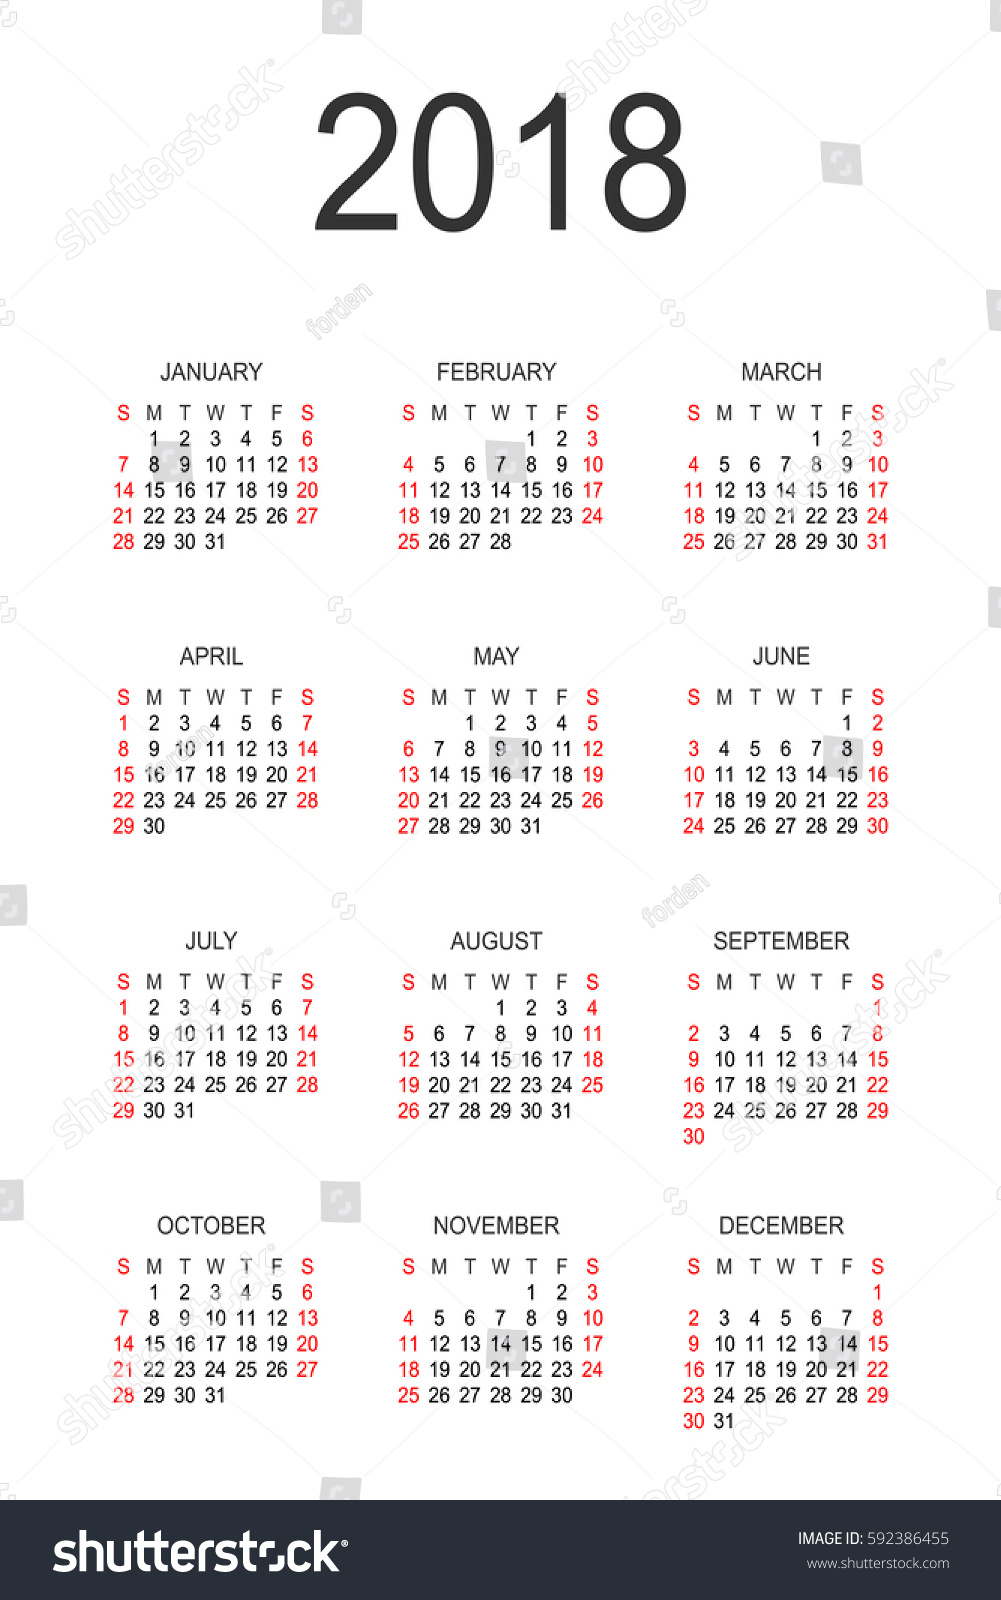 sunday through saturday calendar template - calendar 2018 year vector design template stock vector